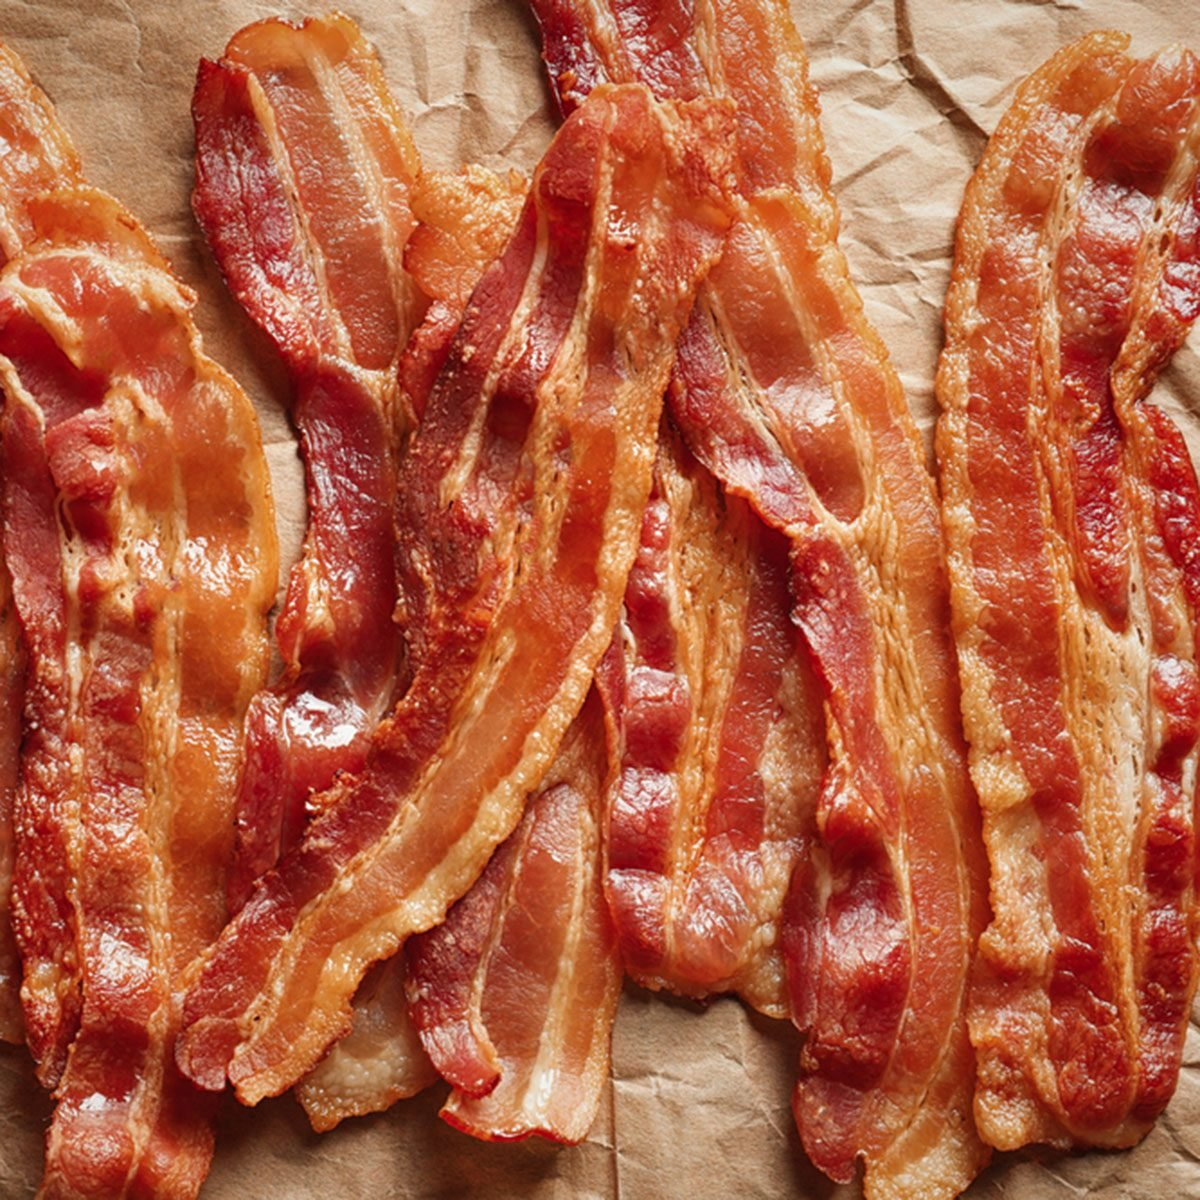 Cooked bacon rashers on parchment; Shutterstock ID 758704648